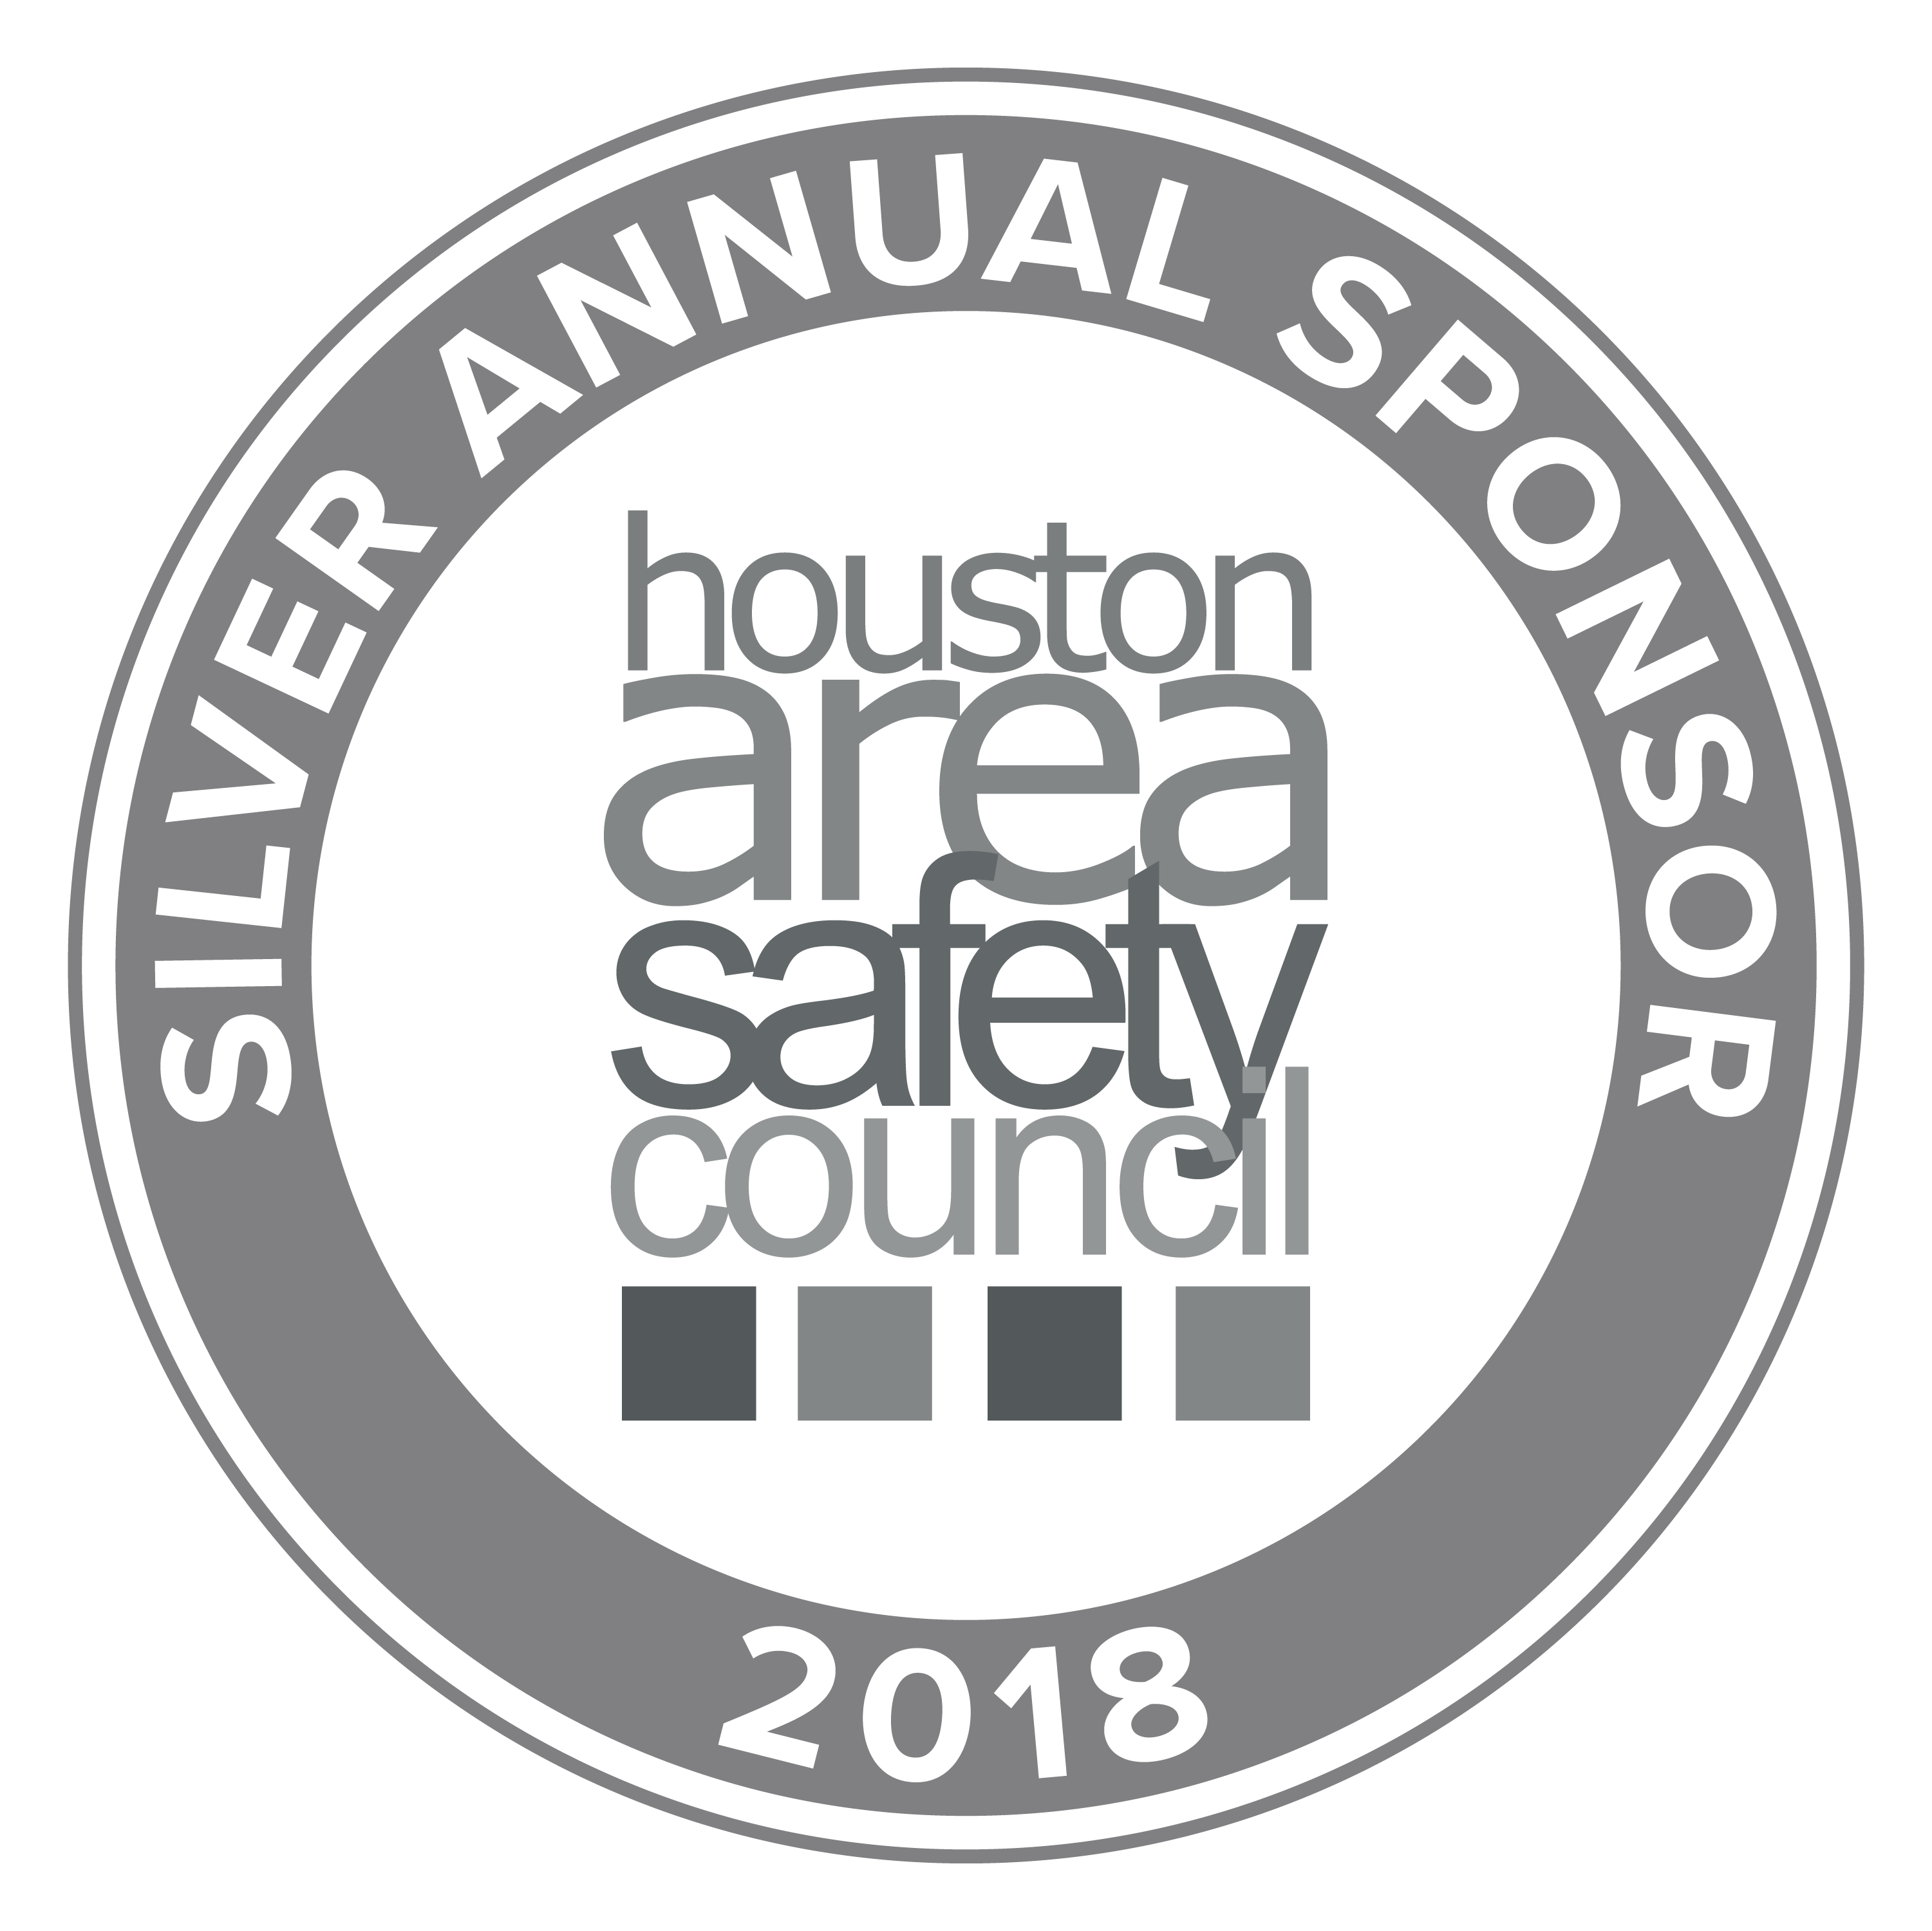 PolSys is a proud sponsor of the  Houston Area Safety Council